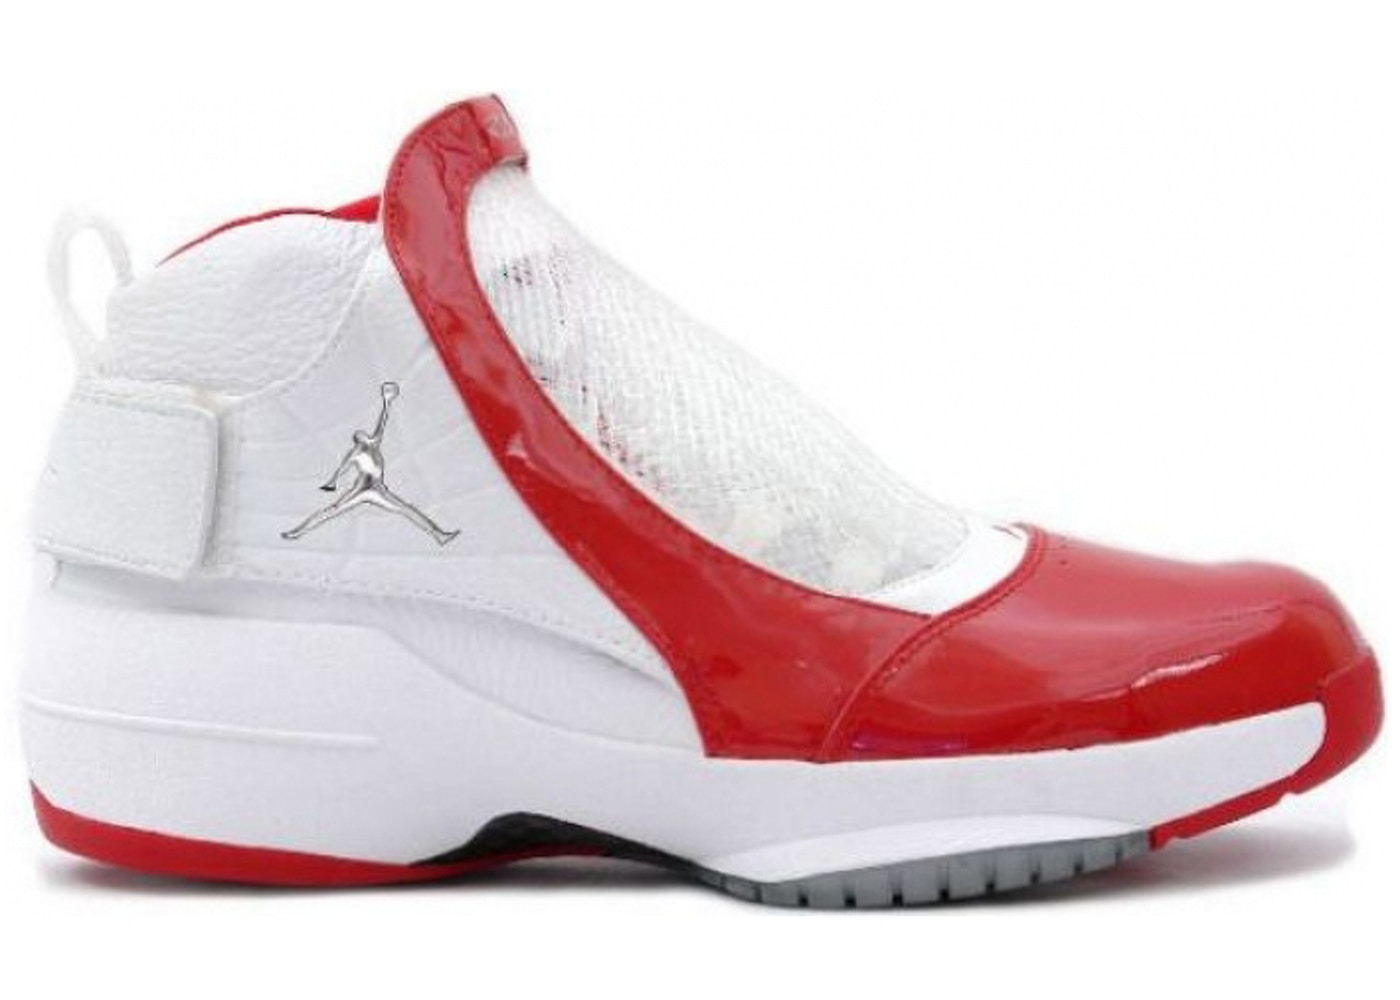 nouveau produit ac708 6754d Buy Air Jordan 19 Shoes & Deadstock Sneakers